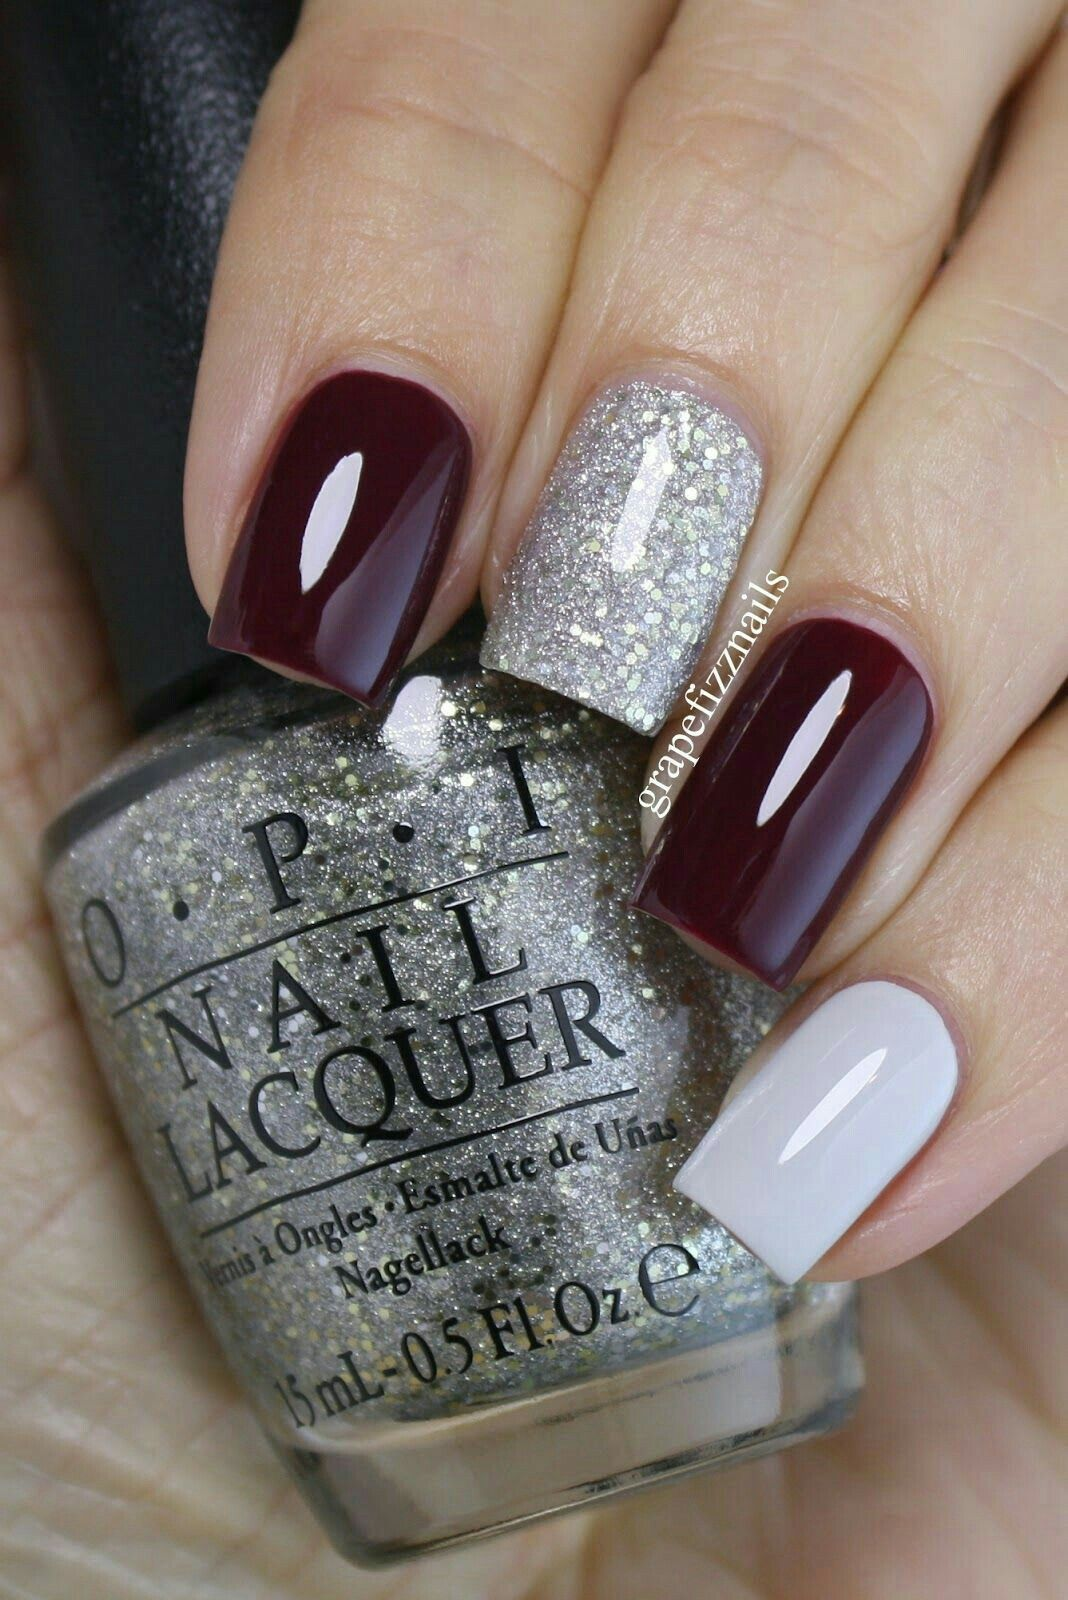 Whatever your seasonal plans/aesthetic, there's a winter nail color to  match. - Pin By Lezanne Scholtz On Nails! Nails! Nails! Pinterest Nails